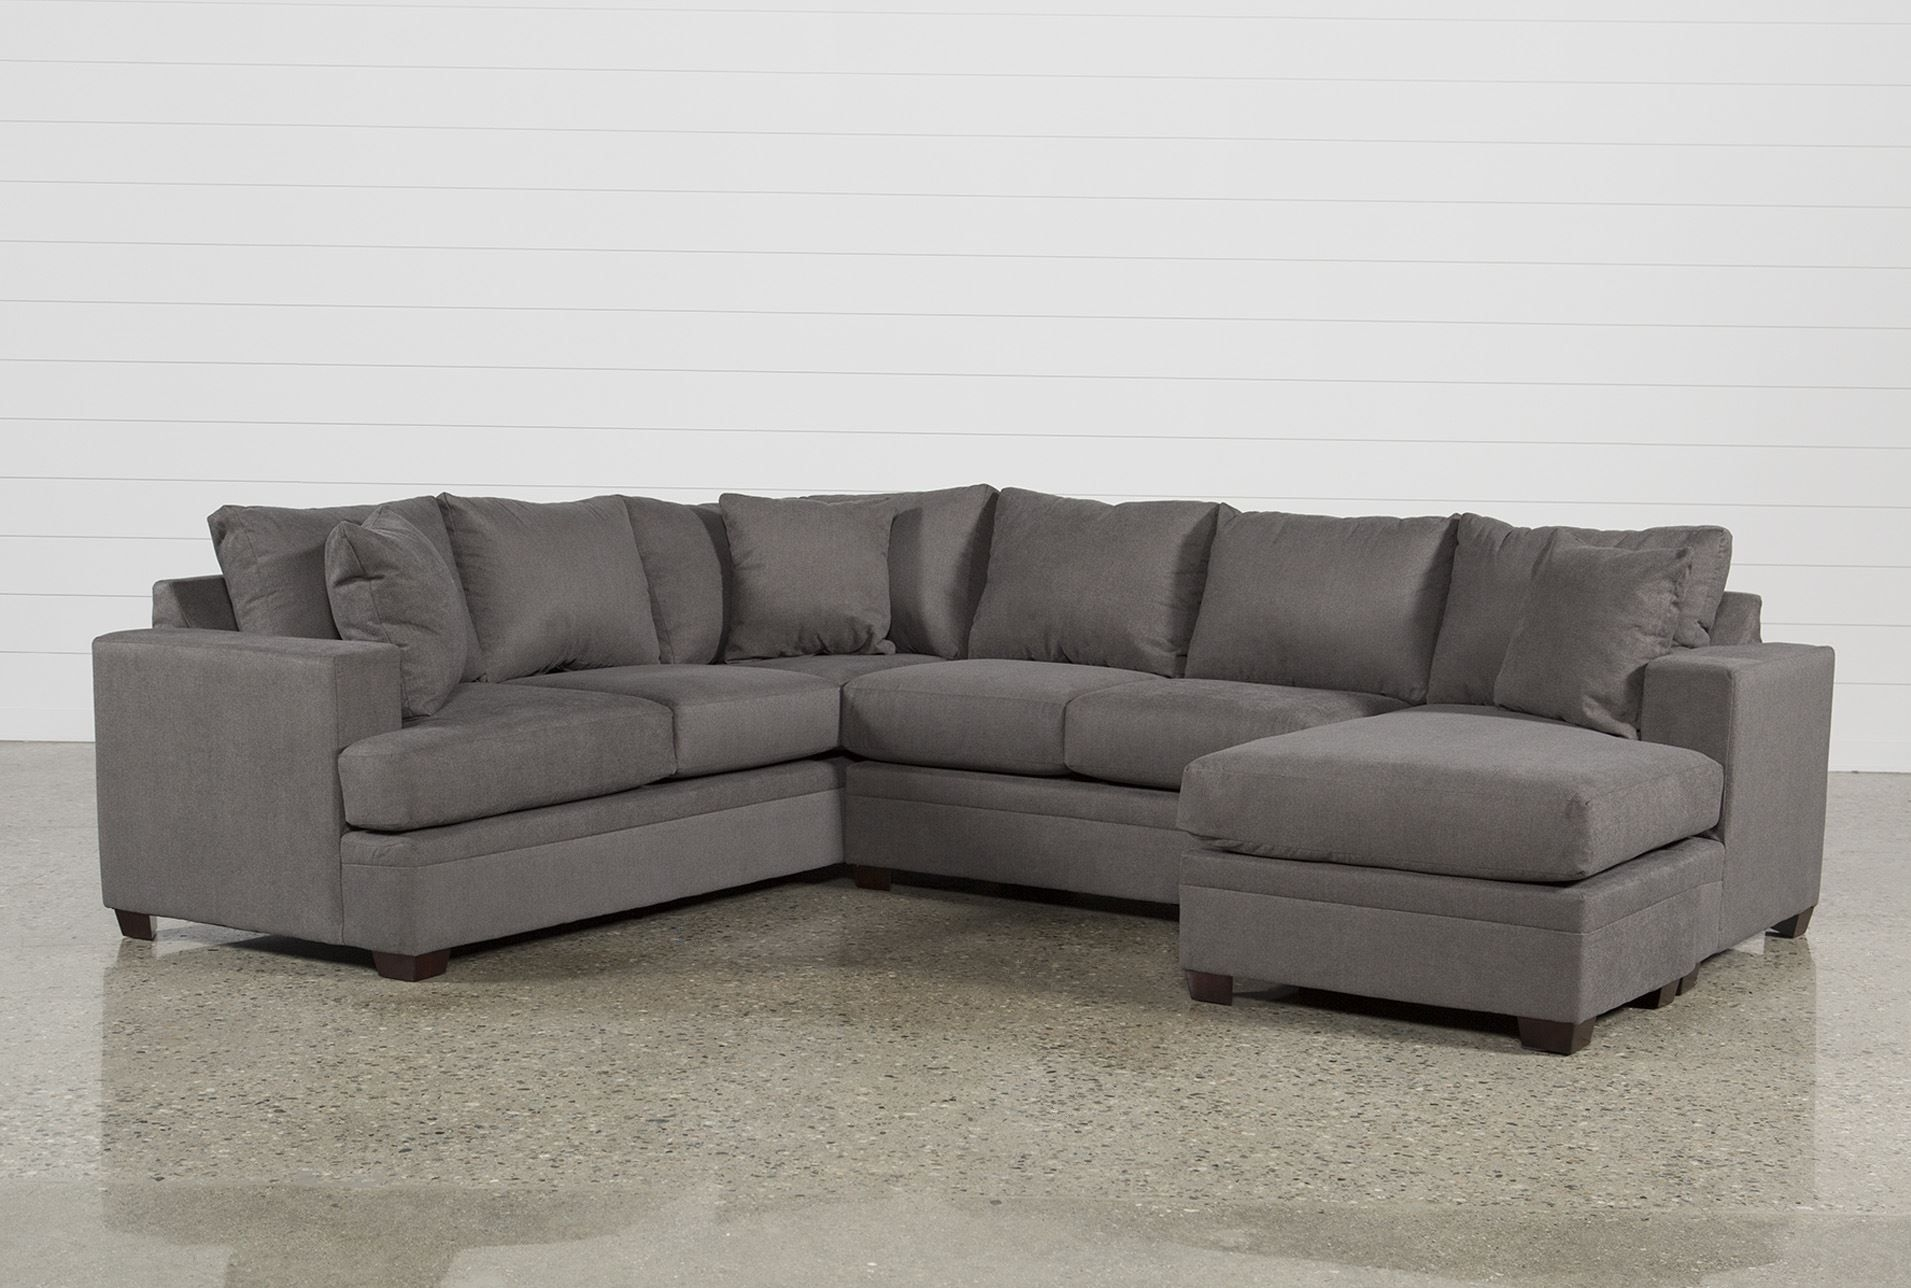 Kerri 2 Piece Sectional W/raf Chaise In 2018 | Products | Pinterest Regarding Mcculla Sofa Sectionals With Reversible Chaise (View 6 of 30)